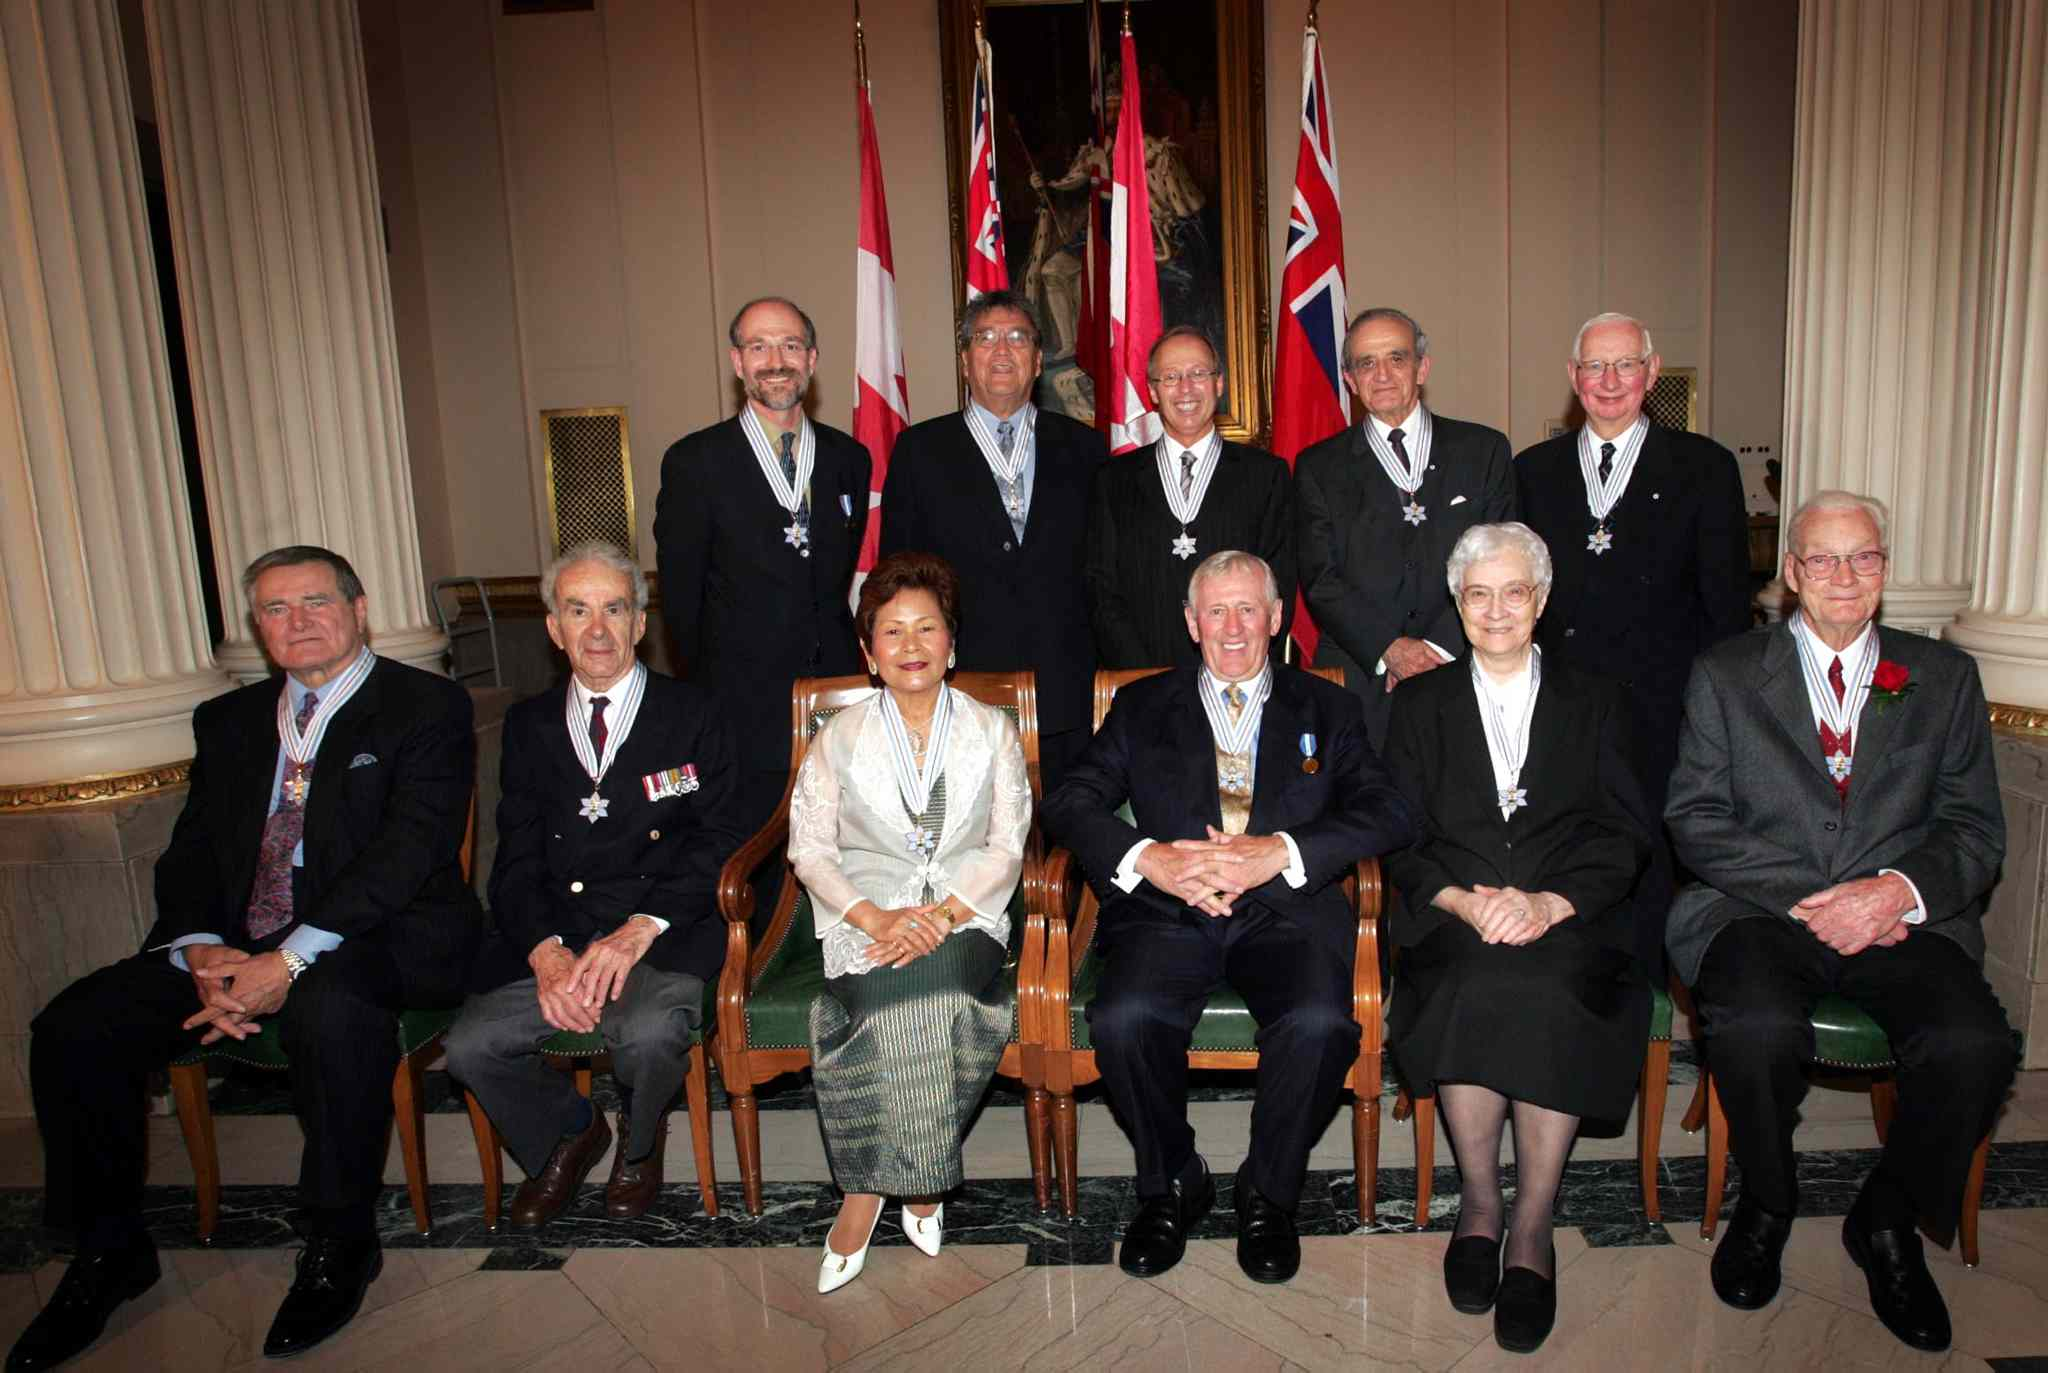 Eleven Manitobans receive the Order of Manitoba during a ceremony in Ottawa on July 15, 2004. Front row, left to right: The Honourable Benjamin Hewak, Val Werier, Virginia Guiang, Leonard Cariou, Sister Theresa Champagne and Vern Hildahl. Back row, left to right: Dr. Harvey Chochinov, Dr. Don Robertson, Samuel Katz, Dr. Arthur Mauro and Dr. Henry Friesen.